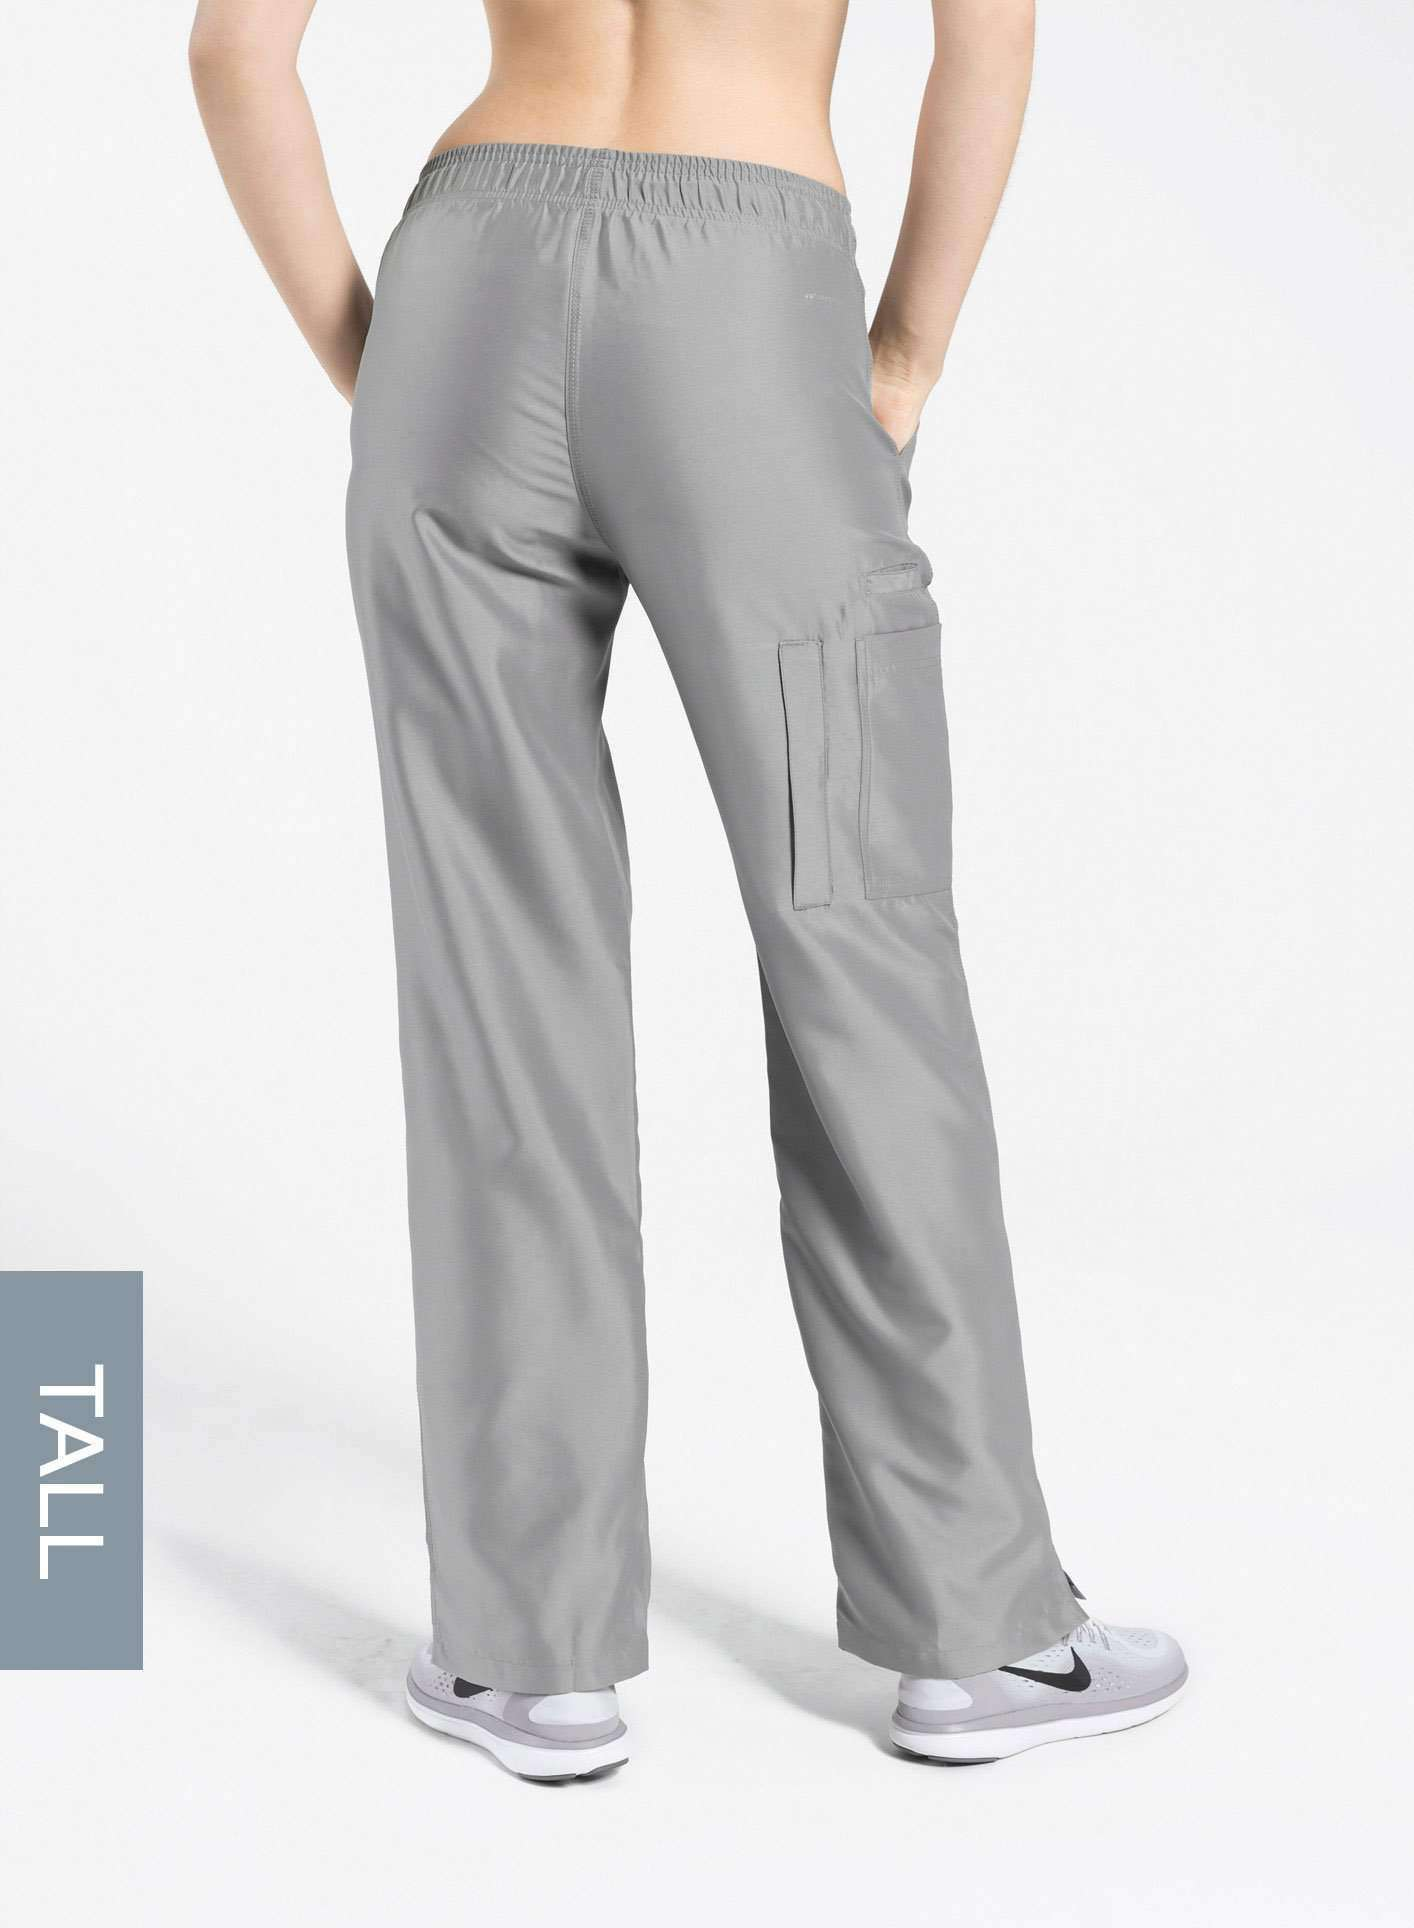 womens tall cargo pocket straight leg scrub pants light grey Elements back